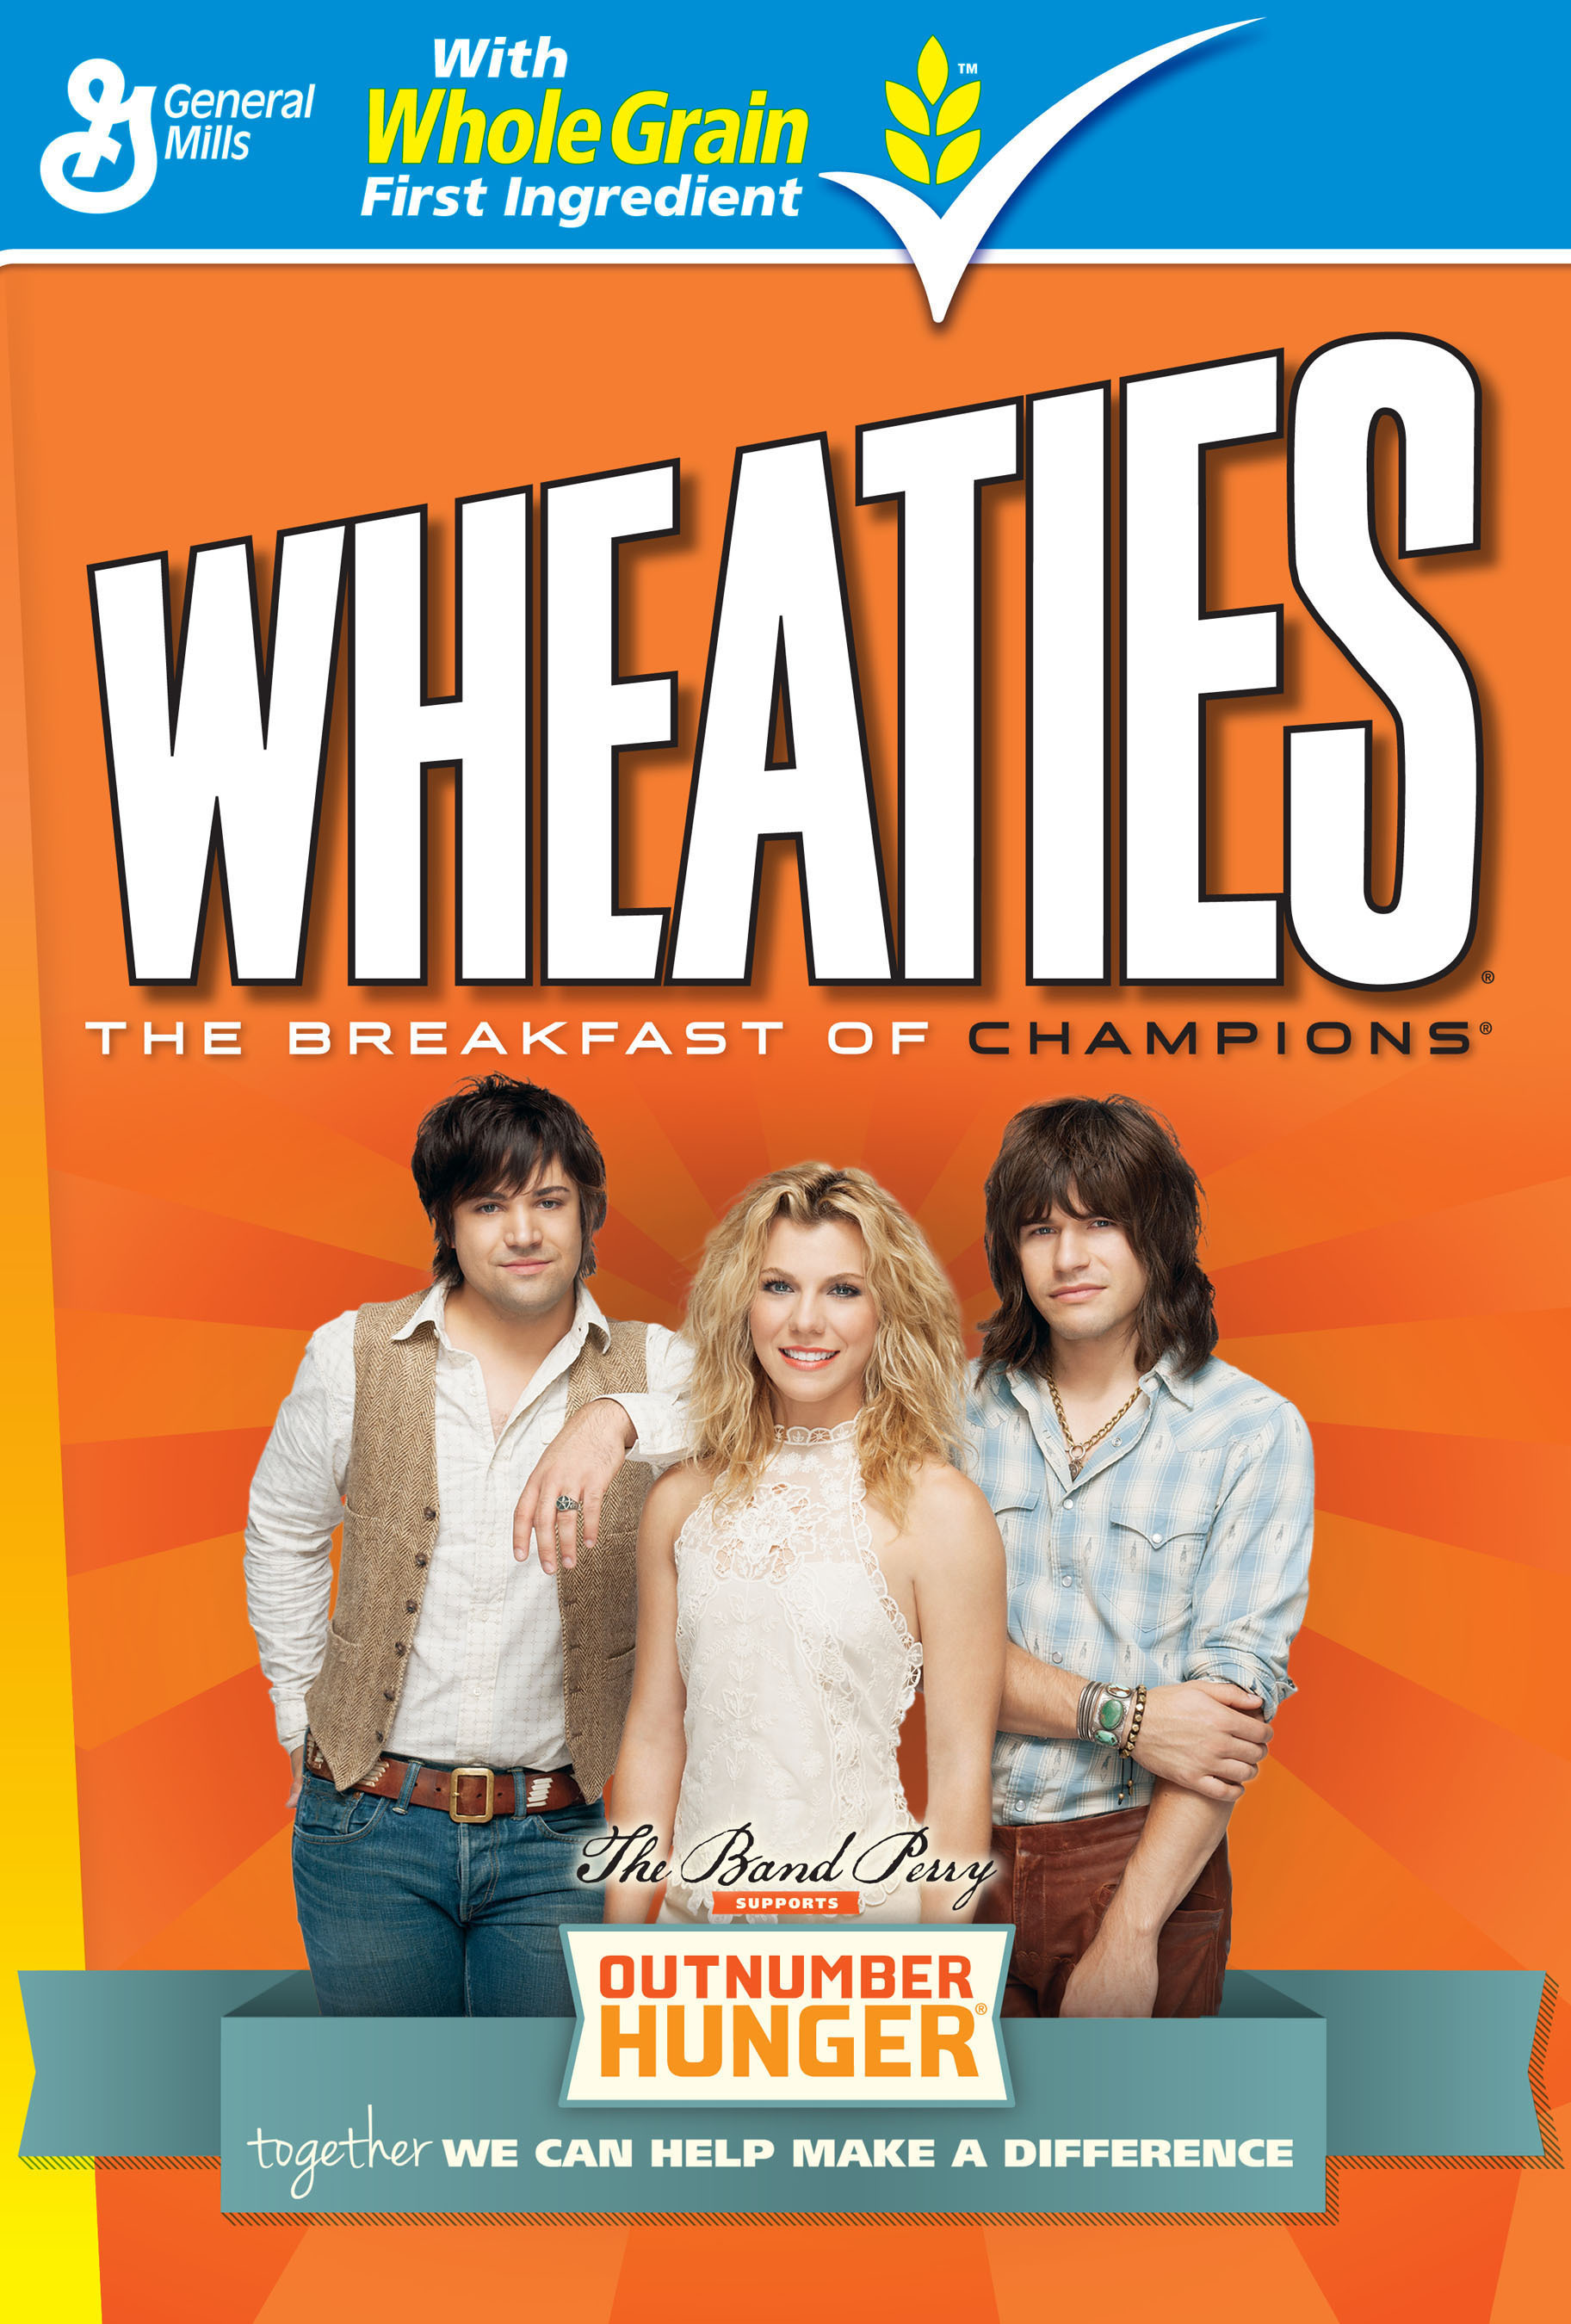 The Band Perry serves as the face of the Outnumber Hunger campaign and will appear on specially marked General Mills products, including Wheaties, Cheerios, Yoplait and Nature Valley.(PRNewsFoto/General Mills)